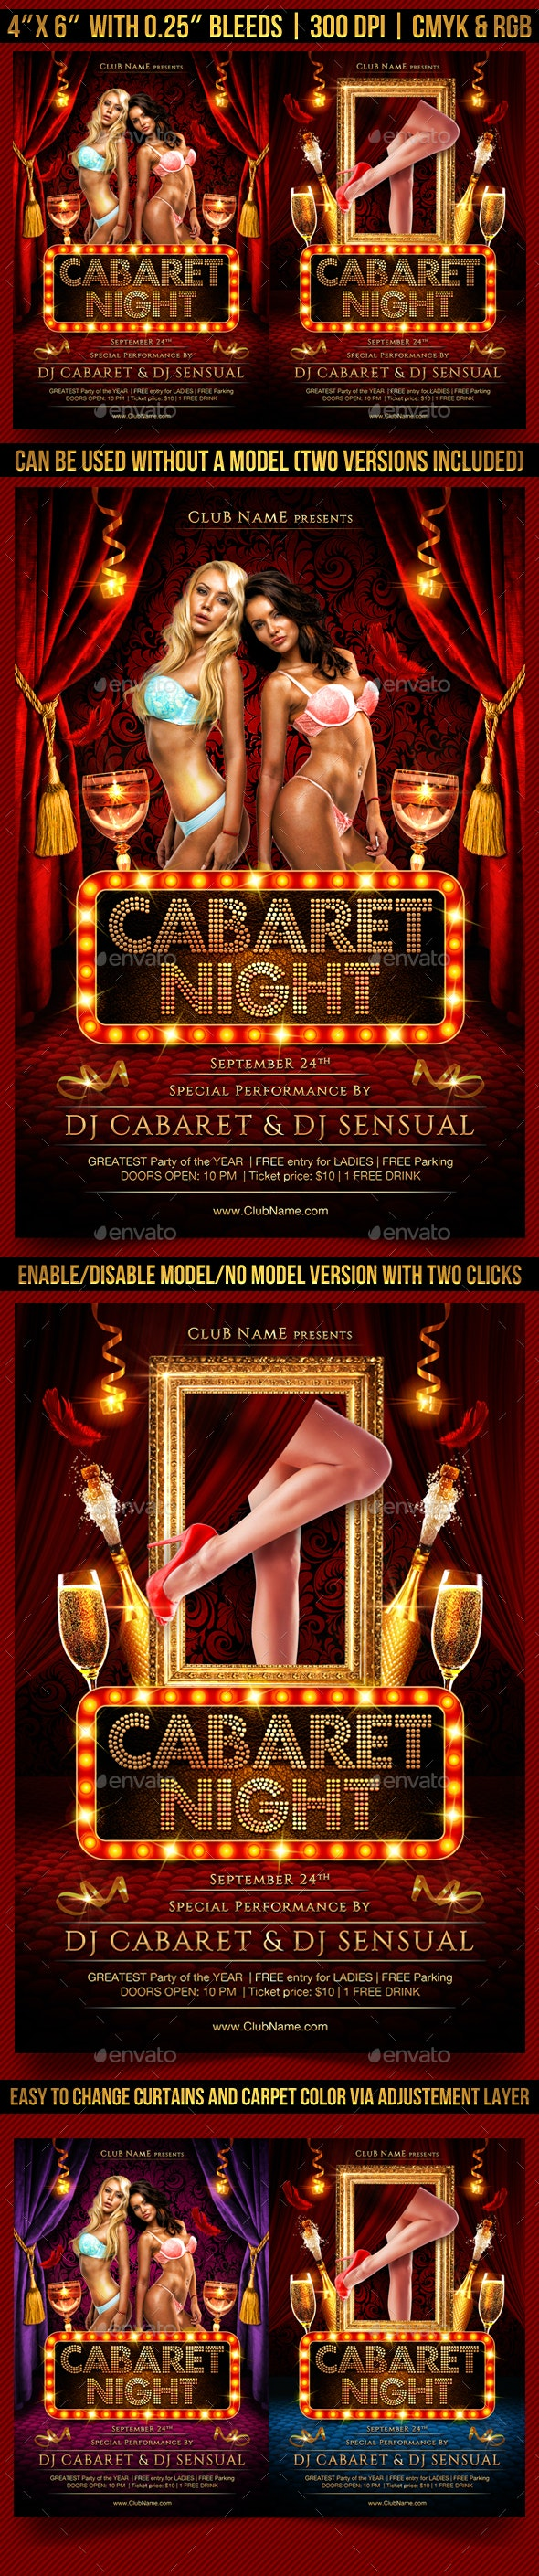 Cabaret or Burlesque Flyer Template - Clubs & Parties Events